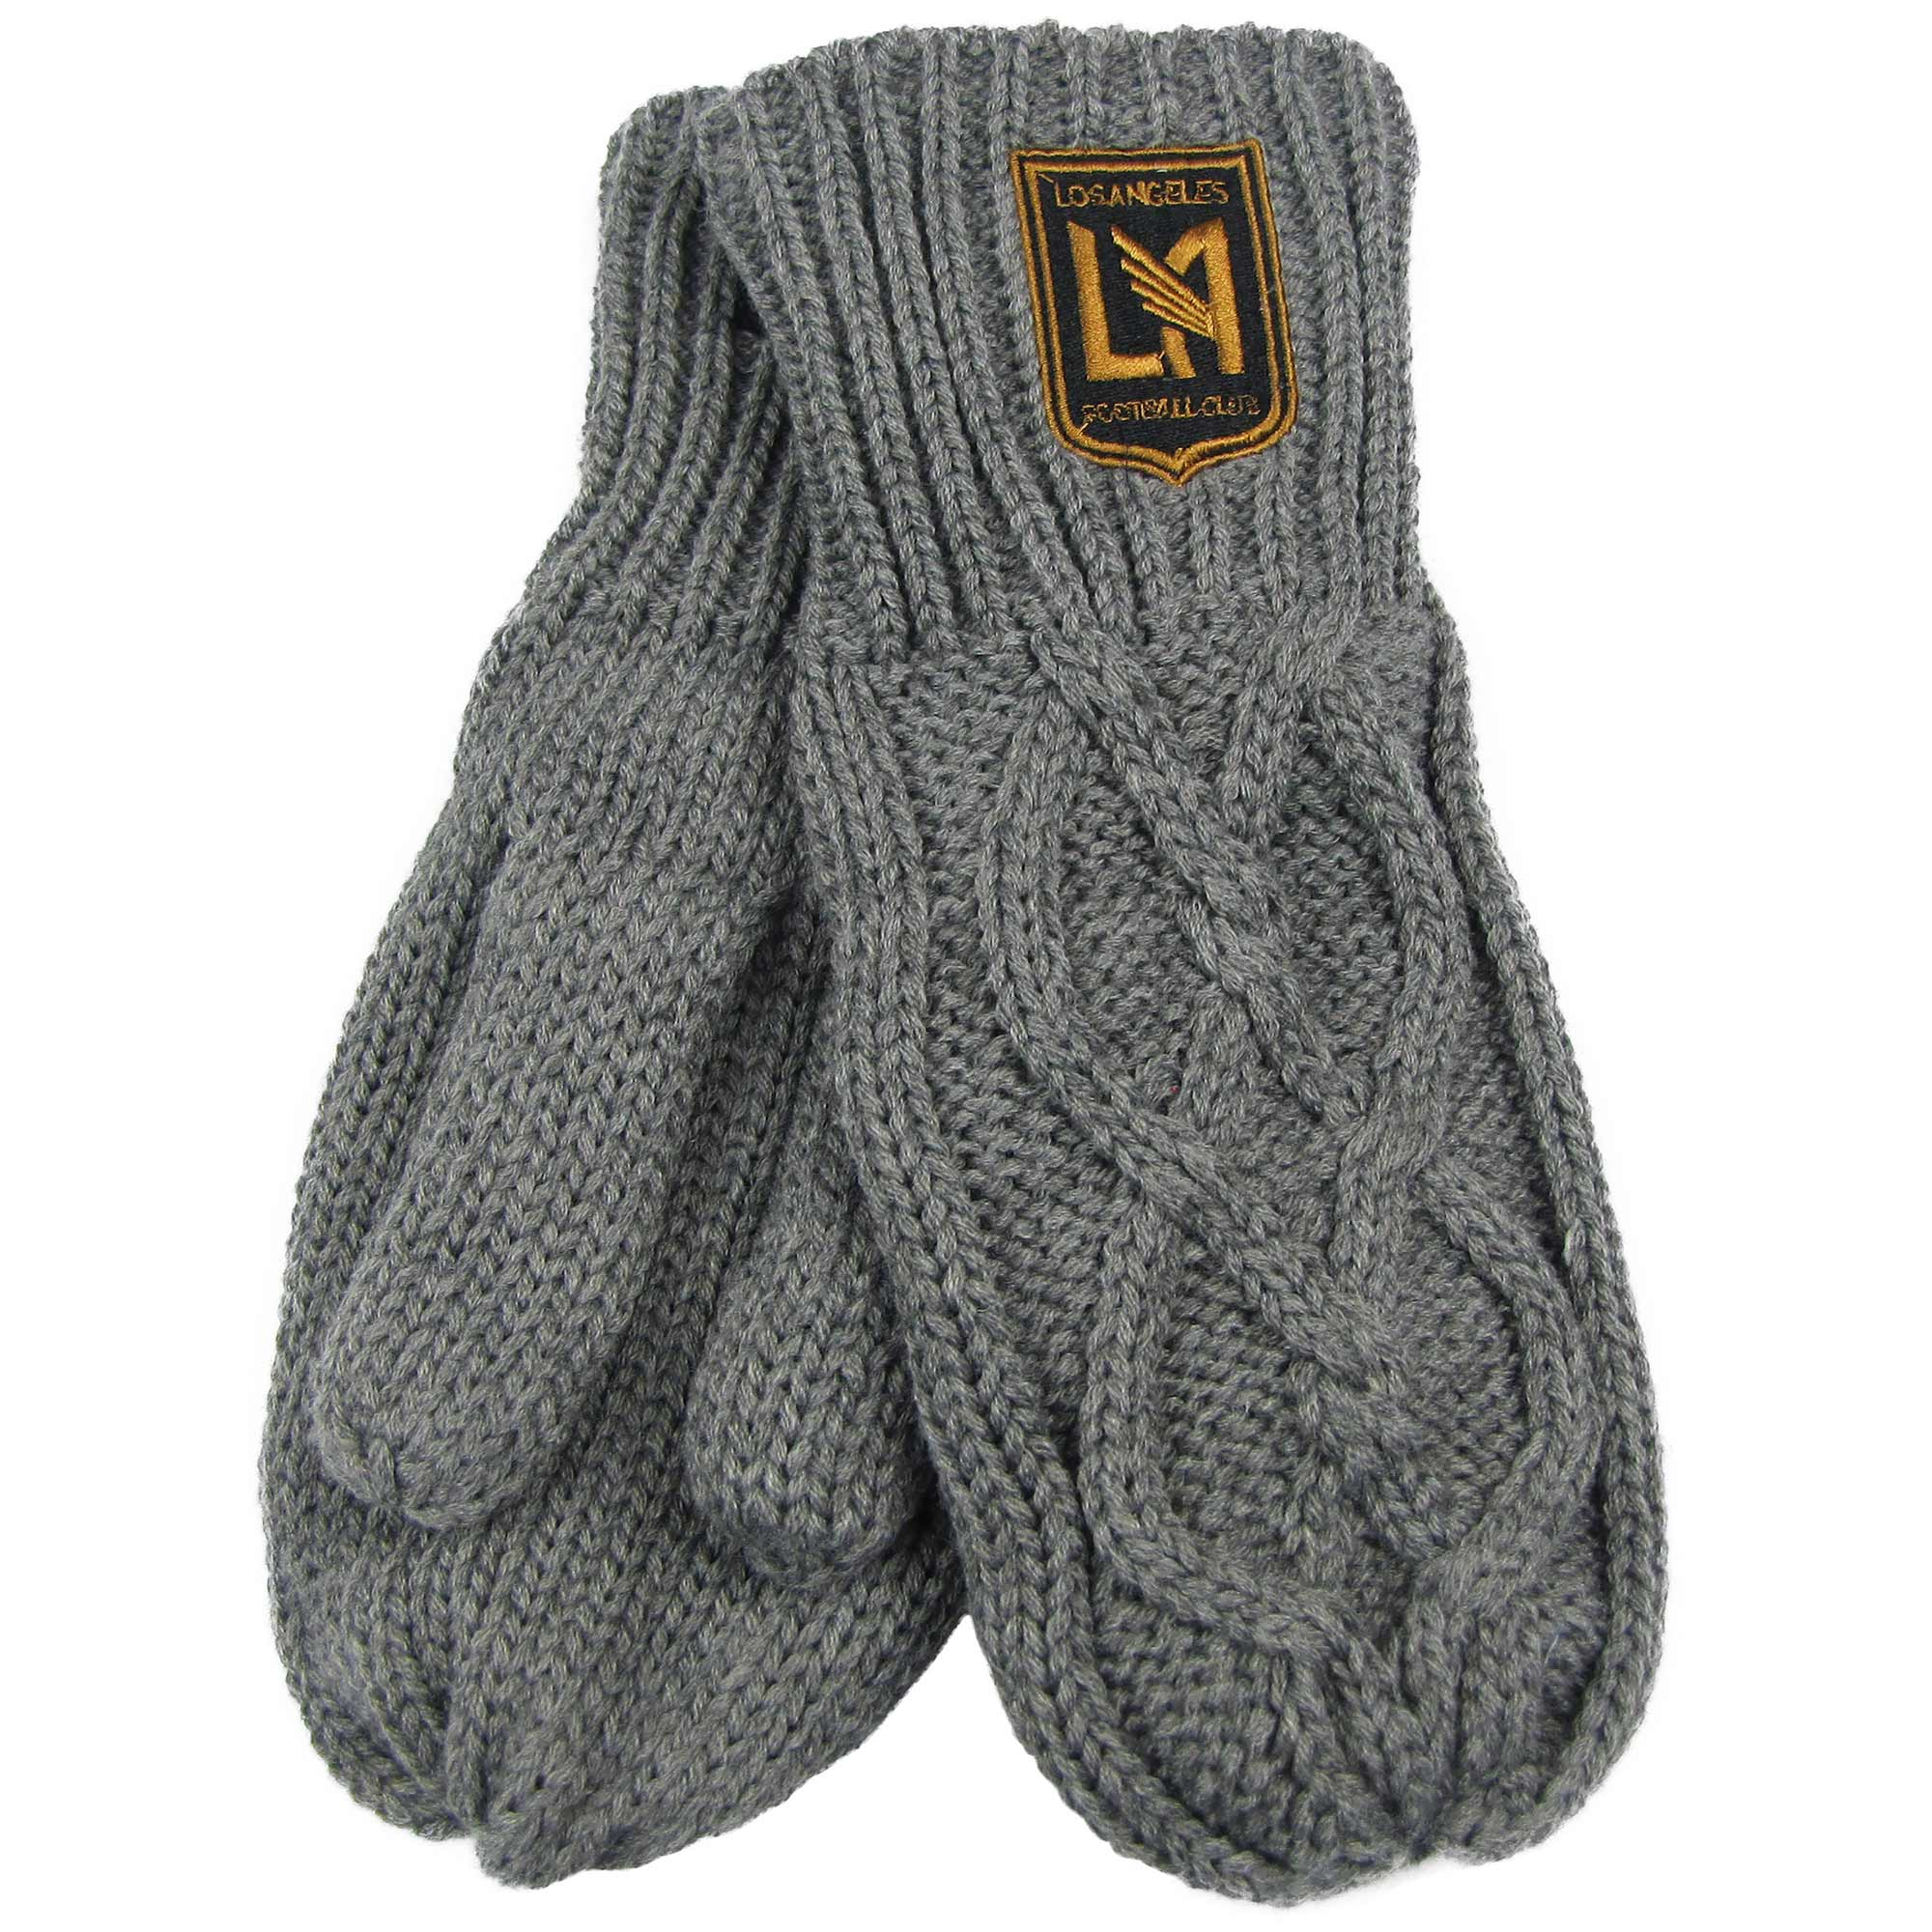 LAFC ZooZatz Women's Cable Knit Mittens - Charcoal - No Size